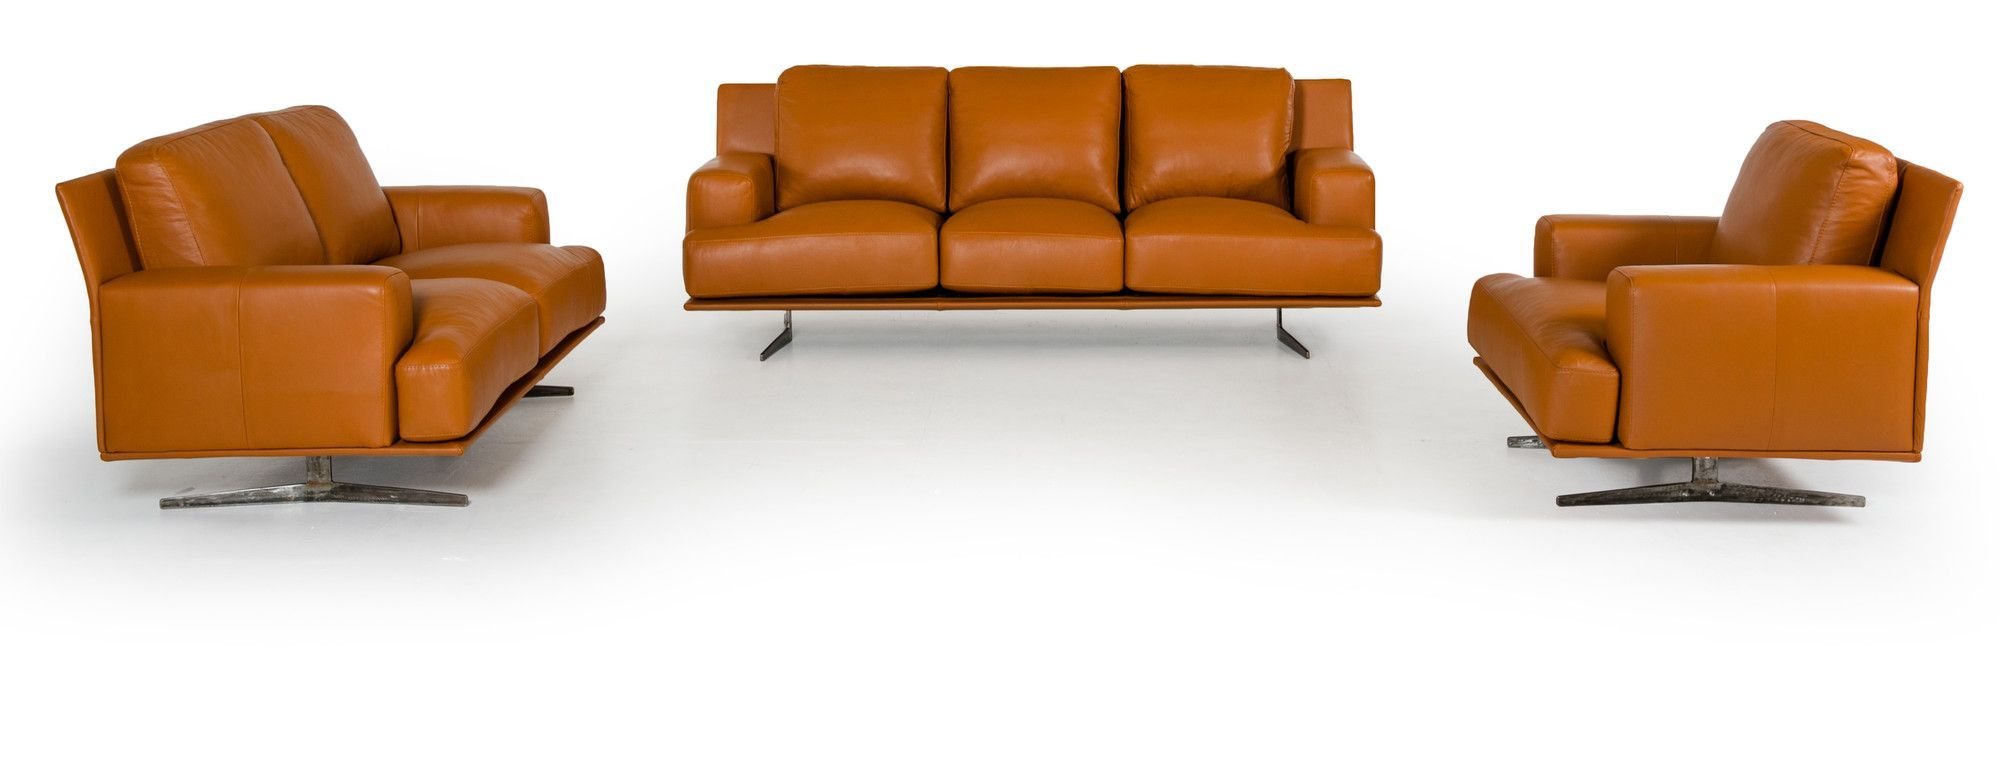 Estro foster piece leather sofa set products pinterest sofa